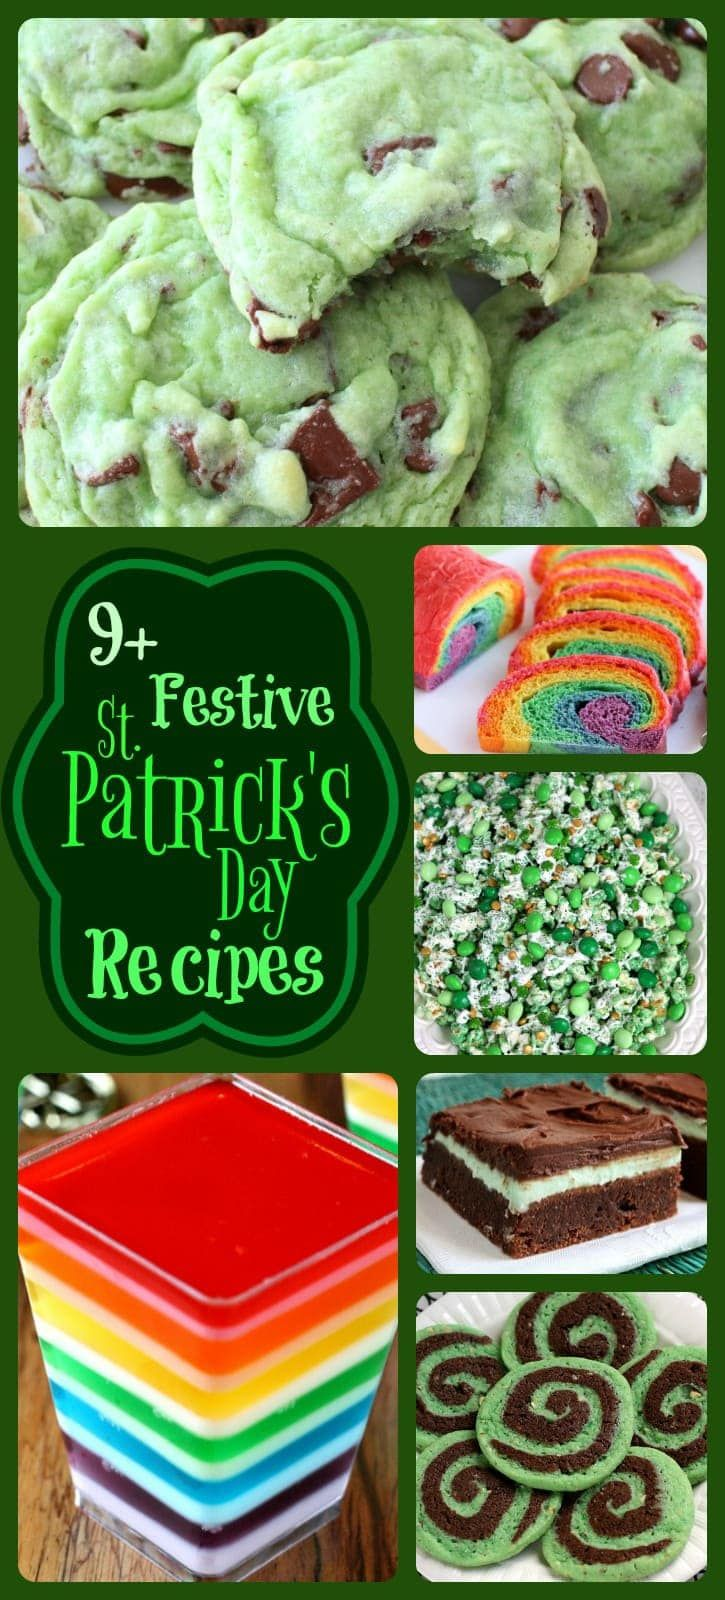 Holiday treats and all things festive are so much fun - these recipes will be sure to make this your tastiest St. Patrick's Day yet!